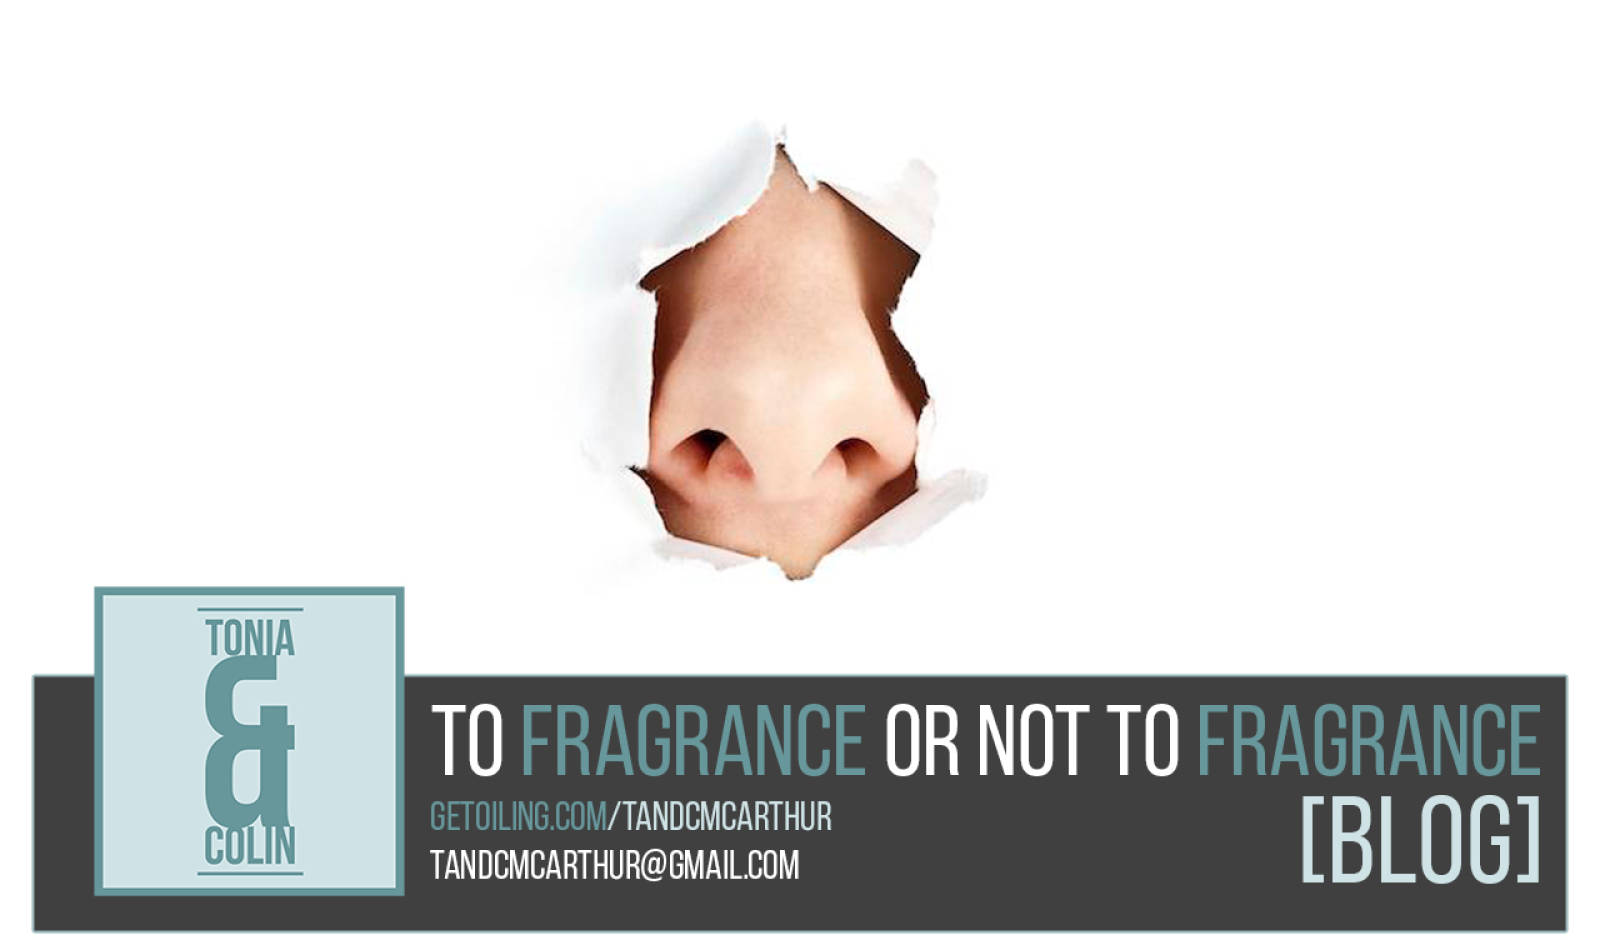 To Fragrance or Not To Fragrance